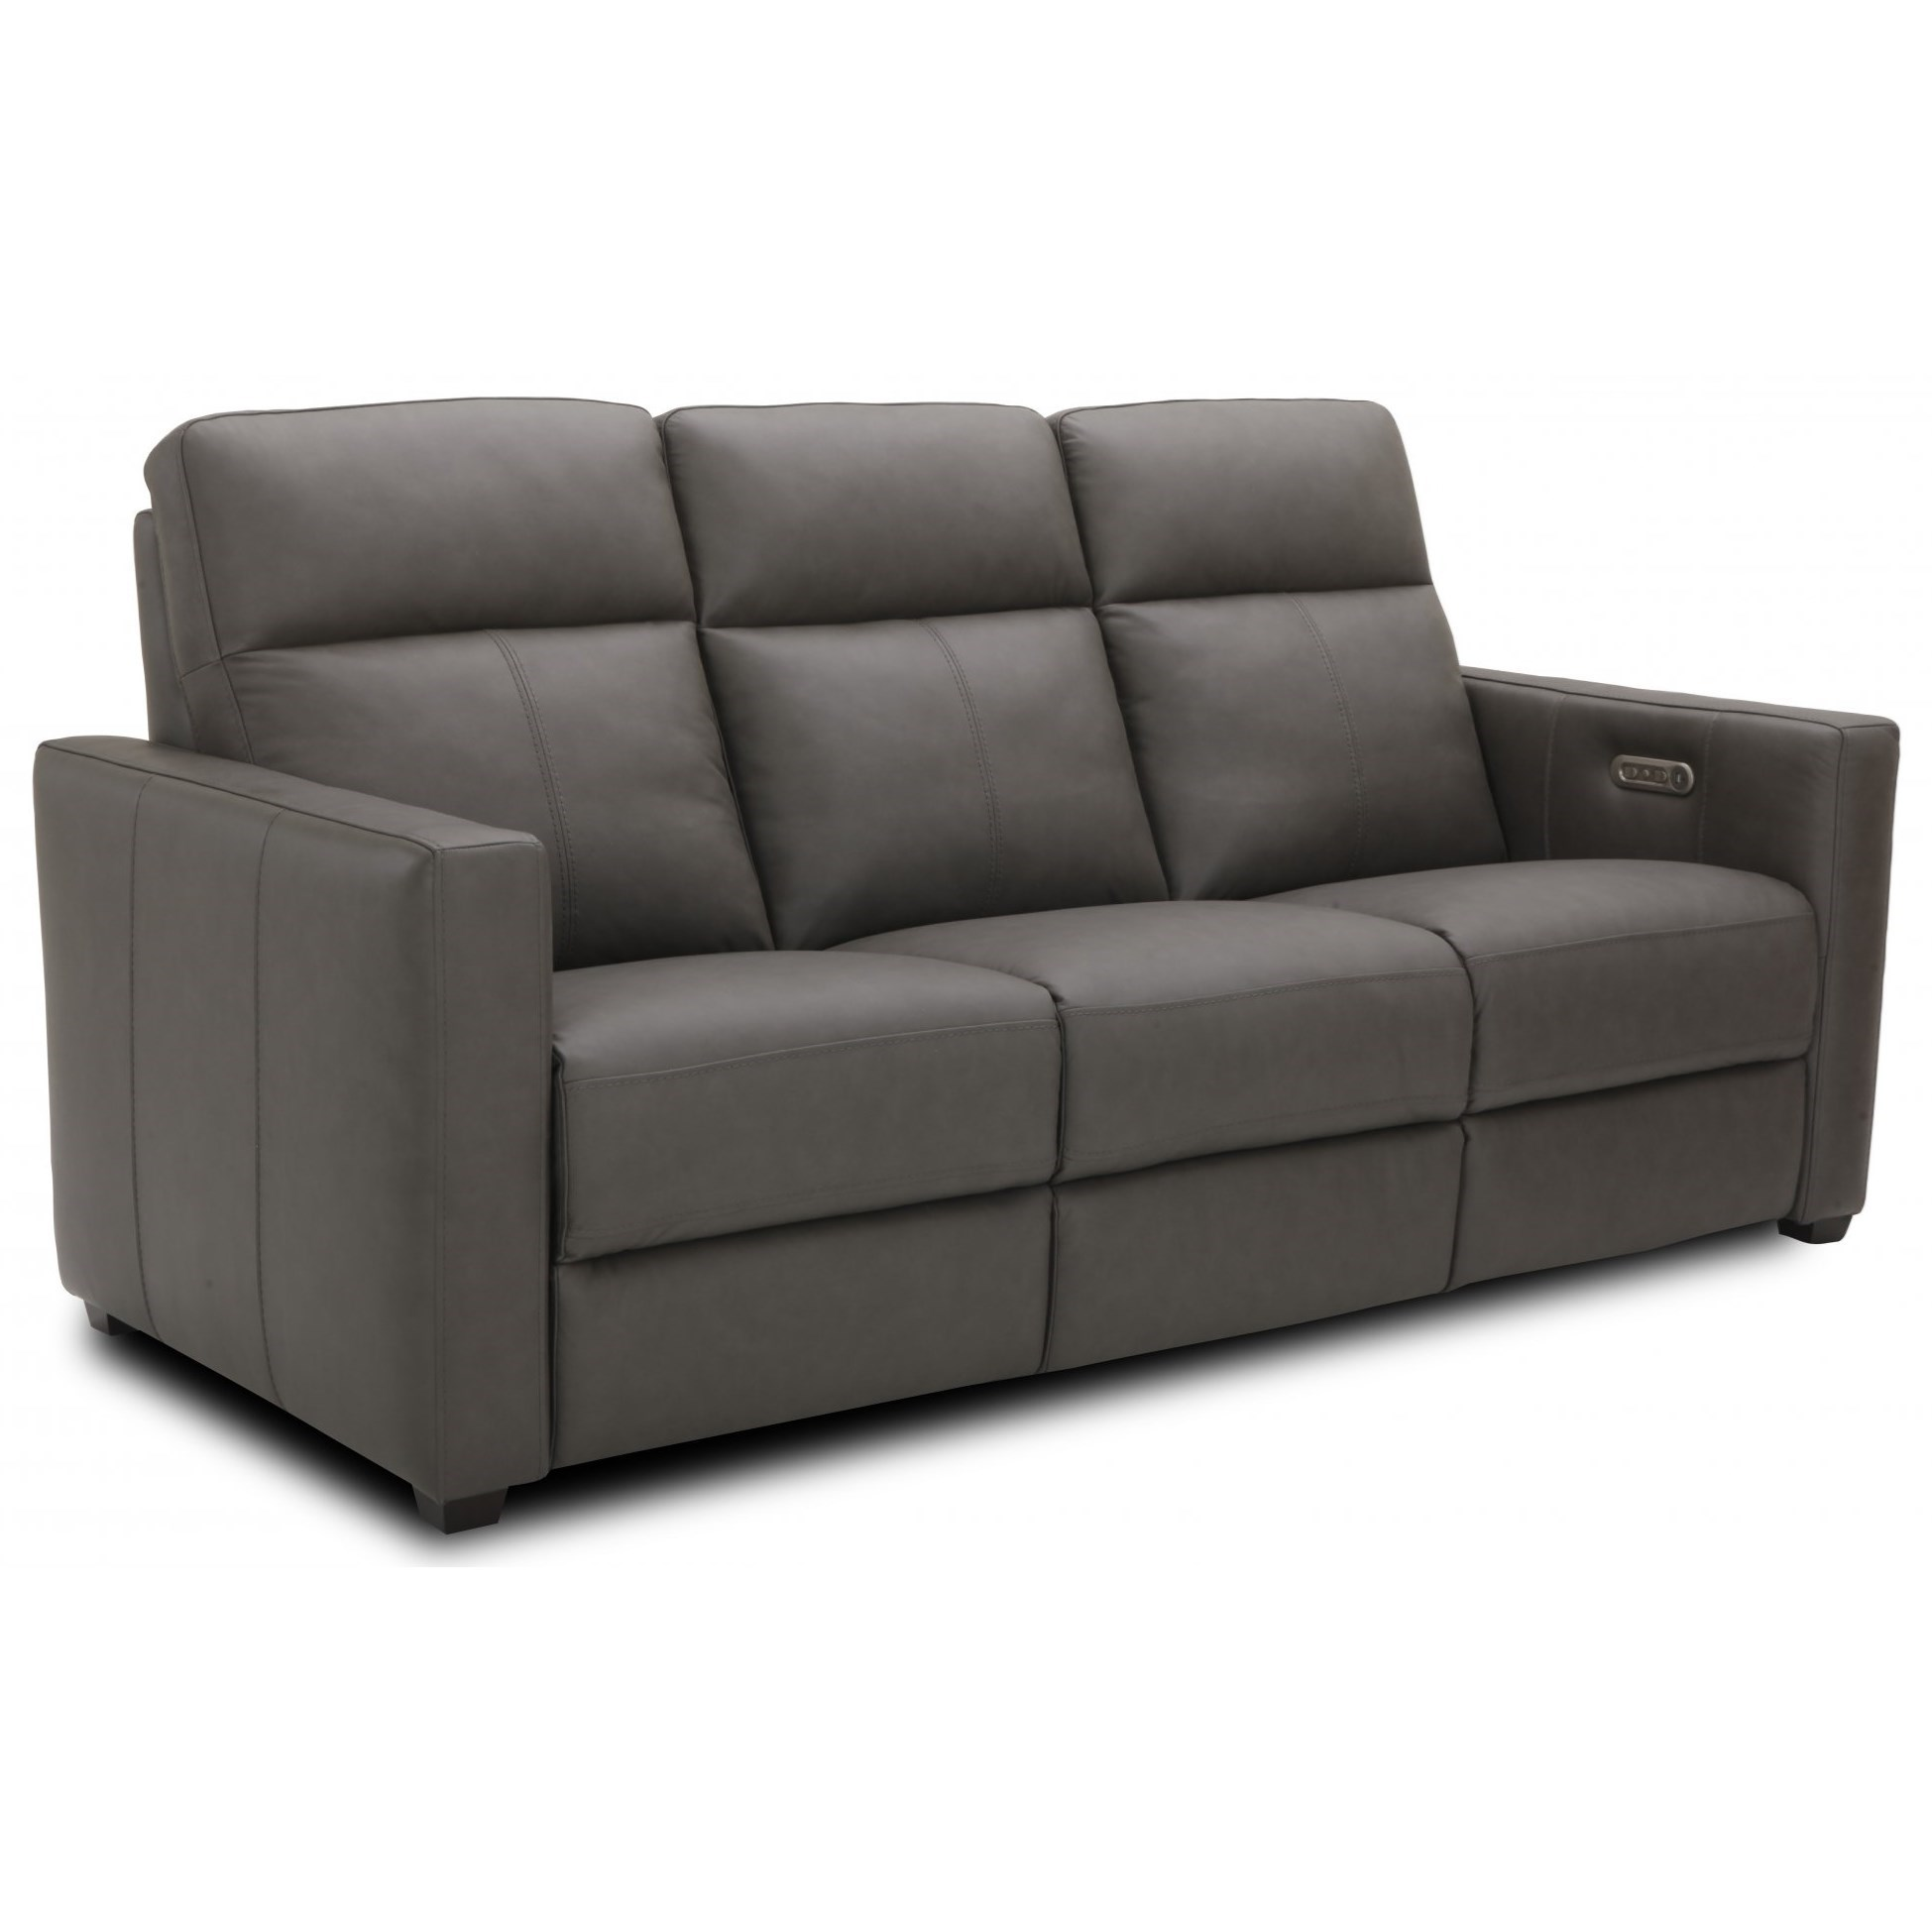 Latitudes - Broadway Power Reclining Sofa by Flexsteel at Fisher Home Furnishings